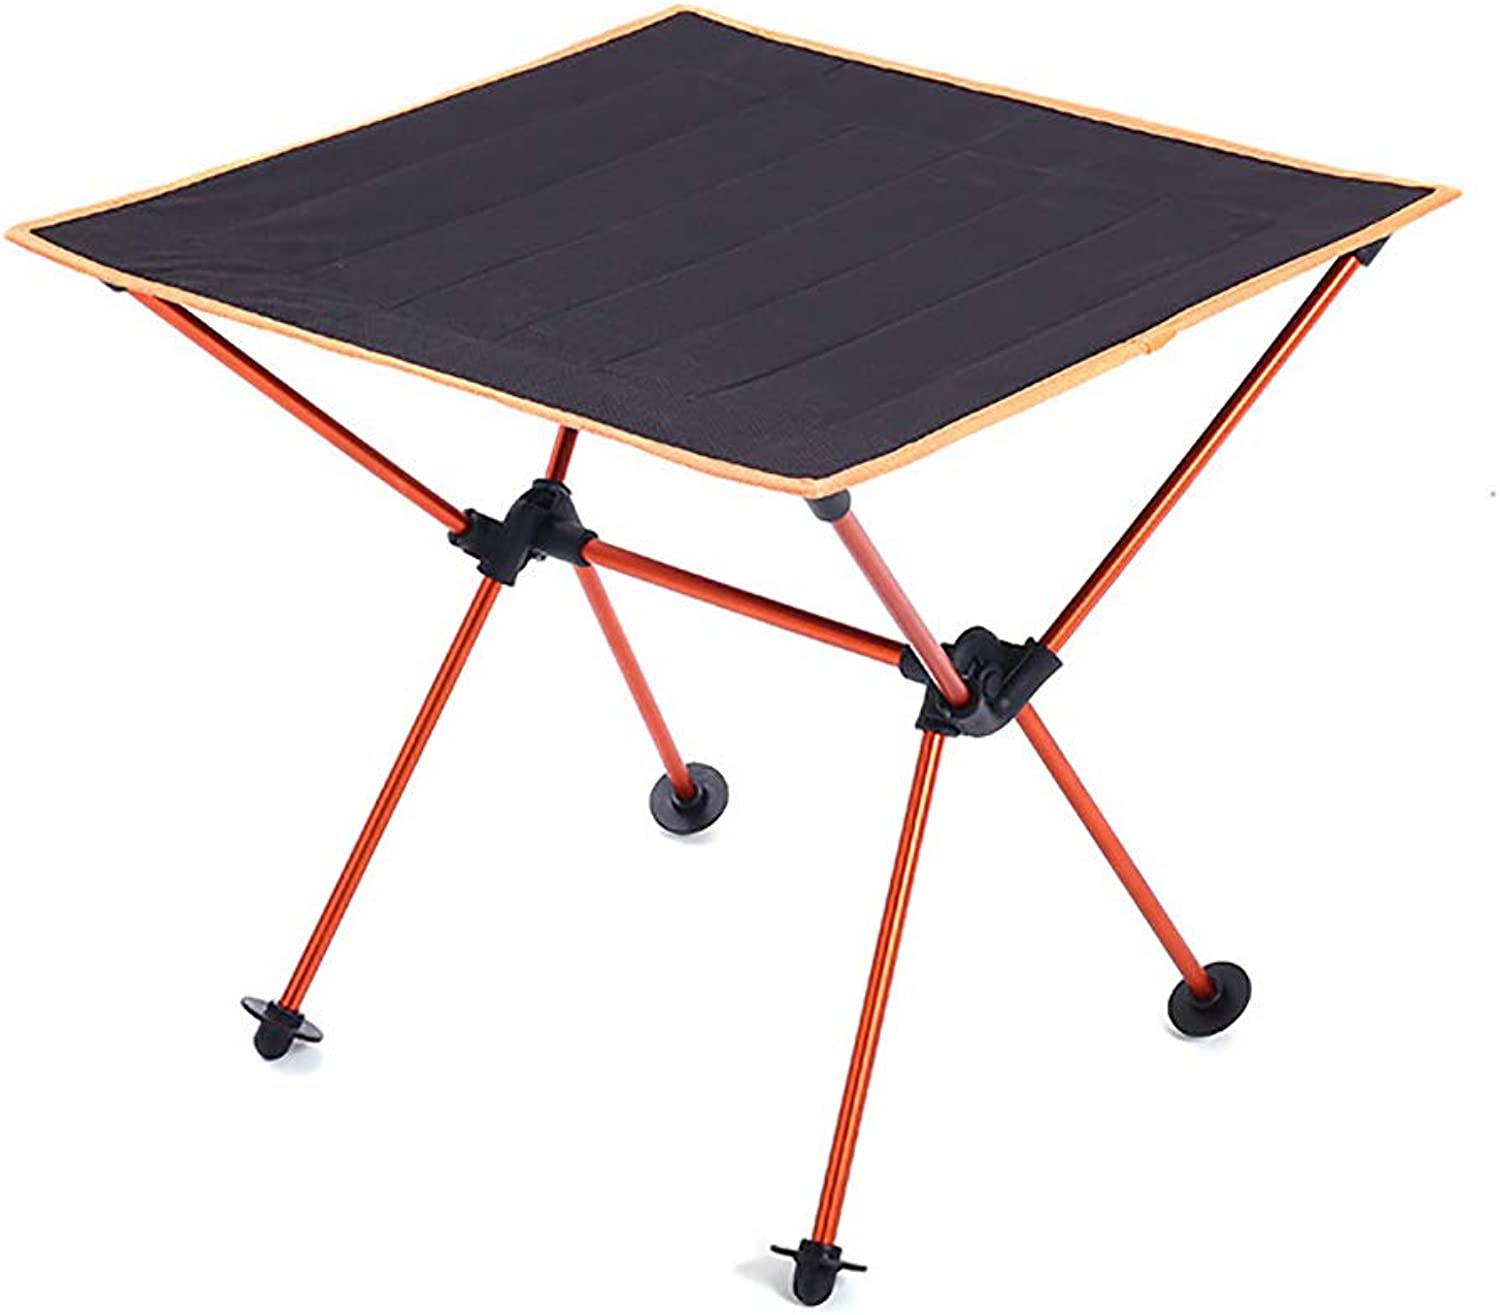 Picnic BBQ Table Portable Lightweight Easy to fold Oxford Cloth Aluminum Alloy Suitable for Outdoor Camping and Leisure